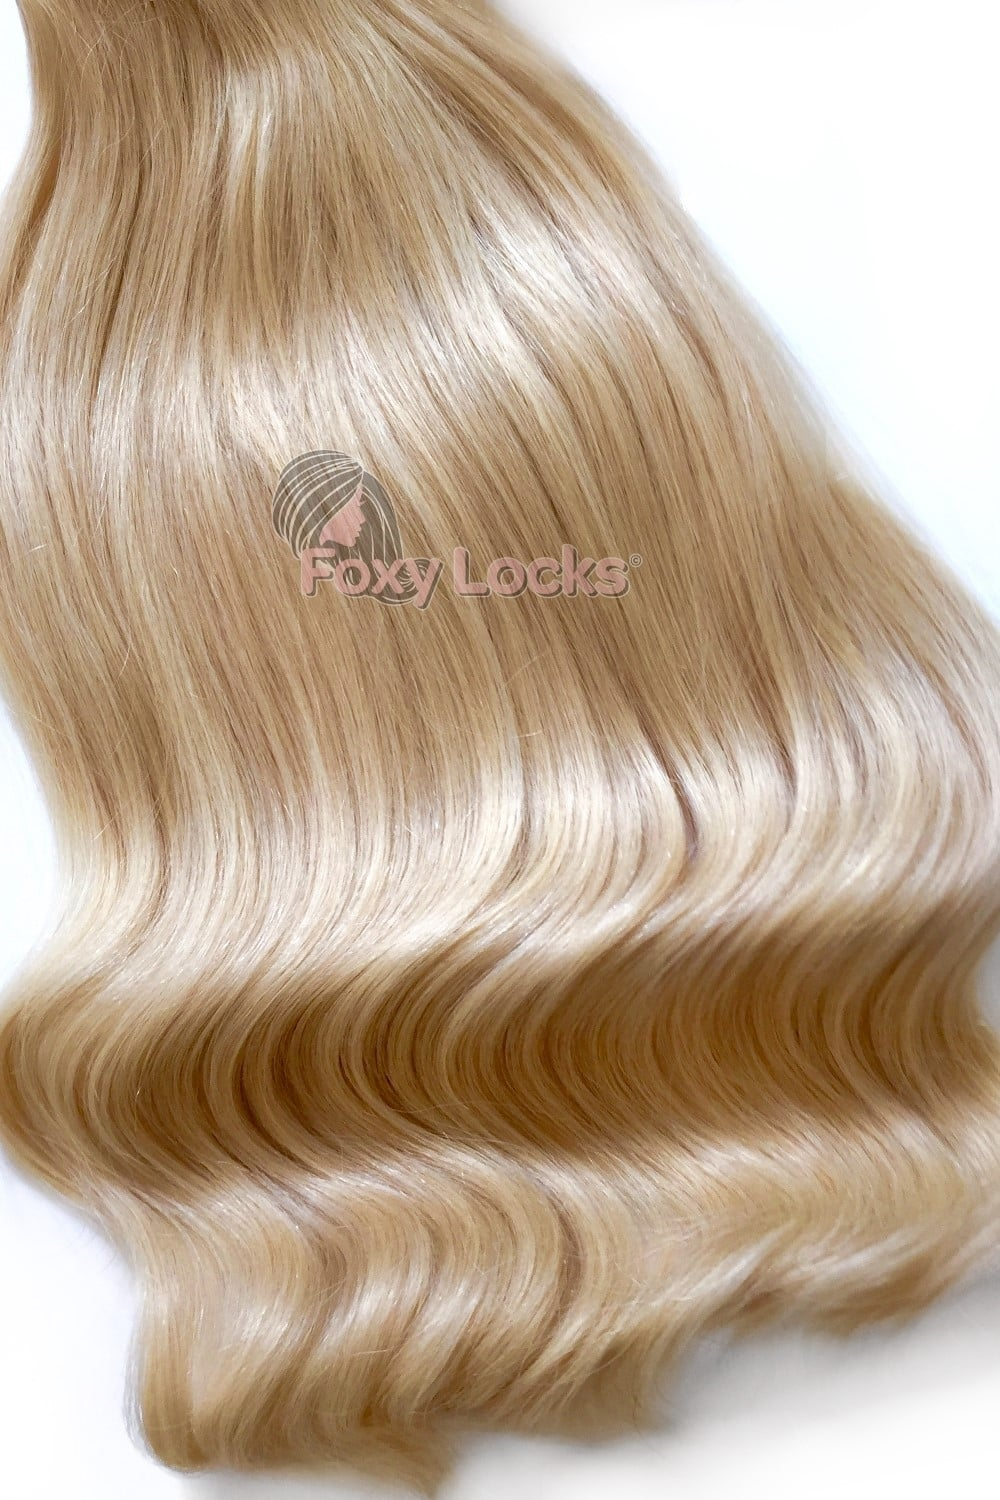 Hollywood Blonde Deluxe 20 Clip In Human Hair Extensions 165g